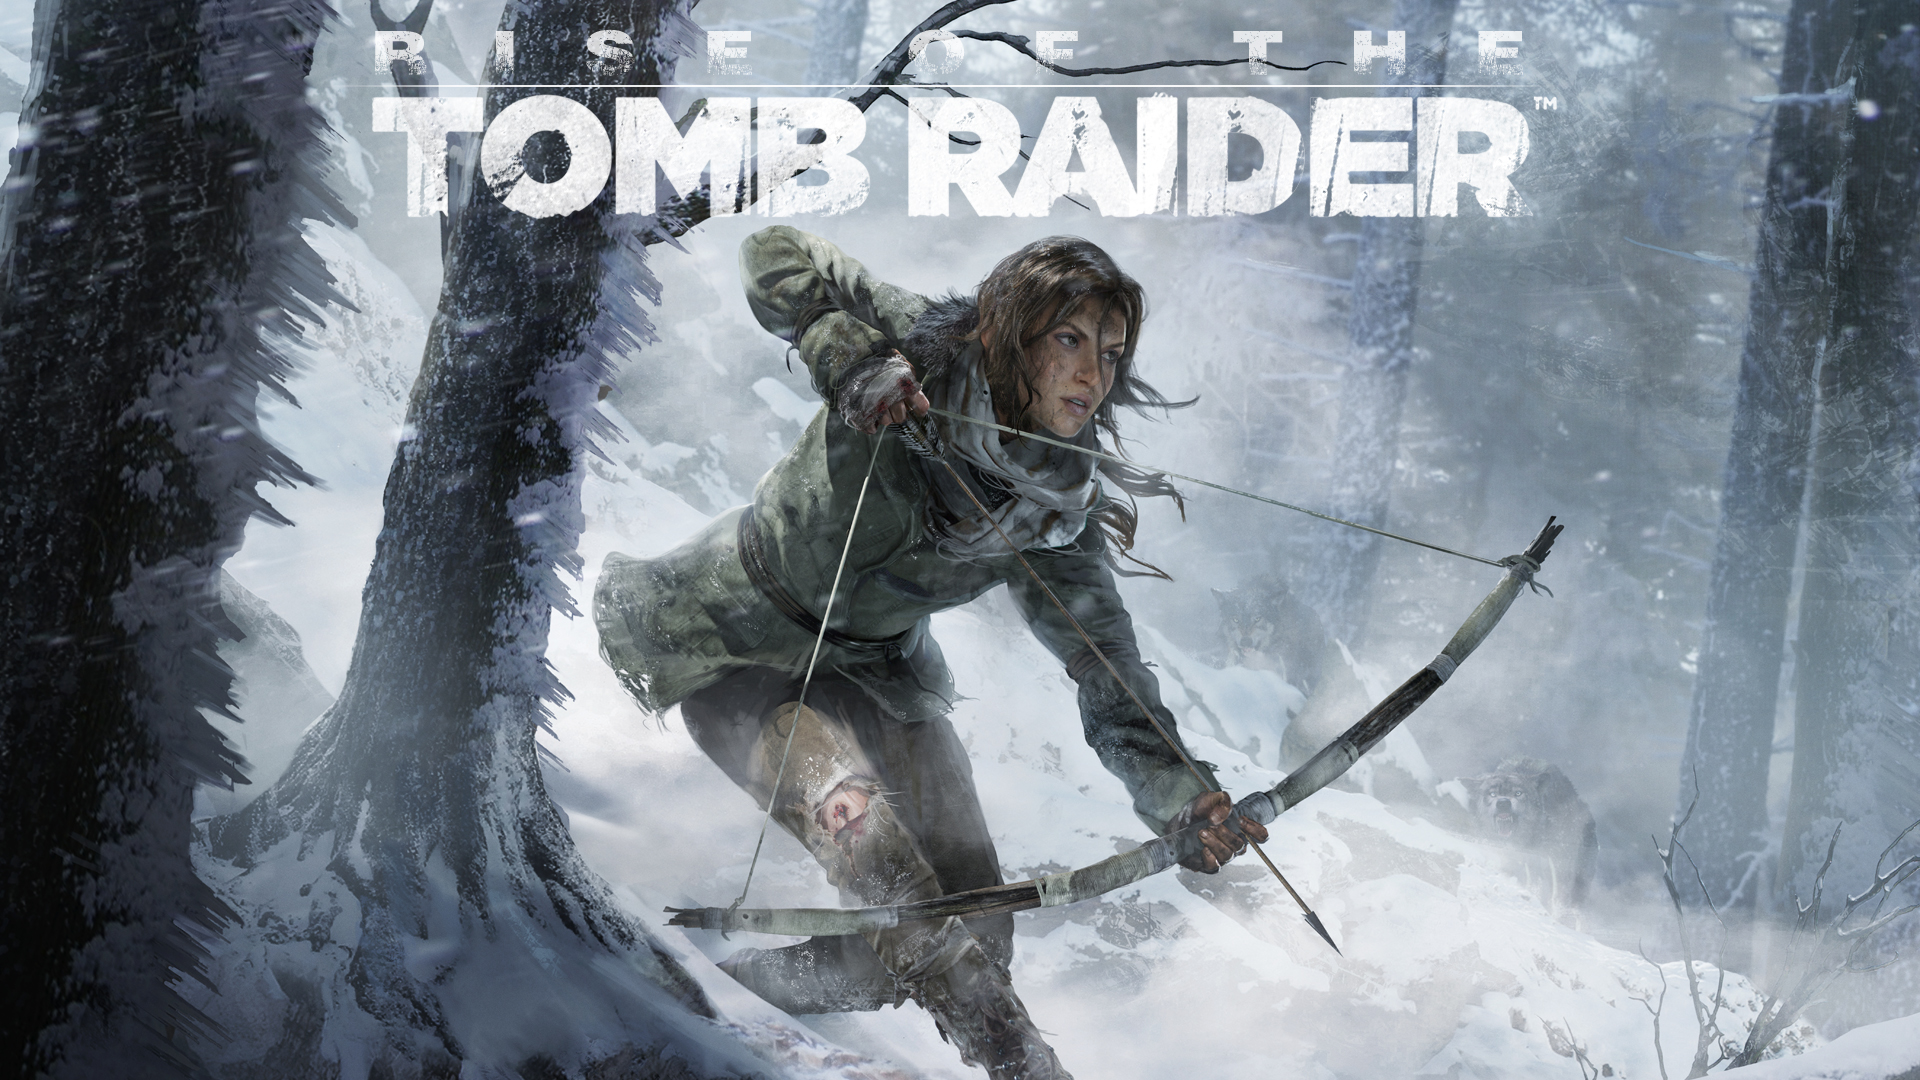 http://img4.wikia.nocookie.net/__cb20140616210415/laracroft/images/4/4e/Rise_of_the_tomb_raider.jpg